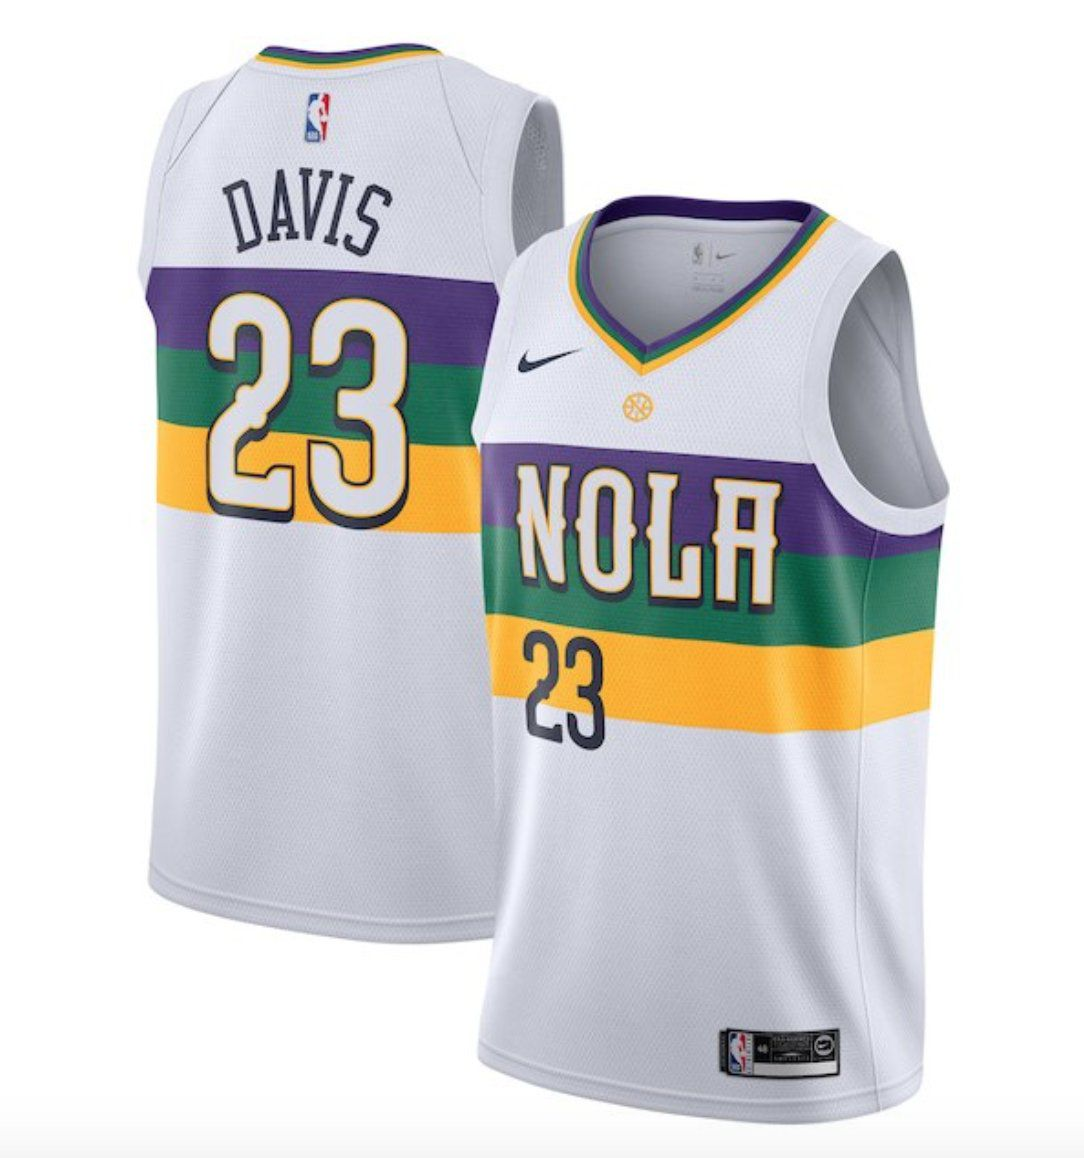 a162a761a07f Every NBA City Edition jersey